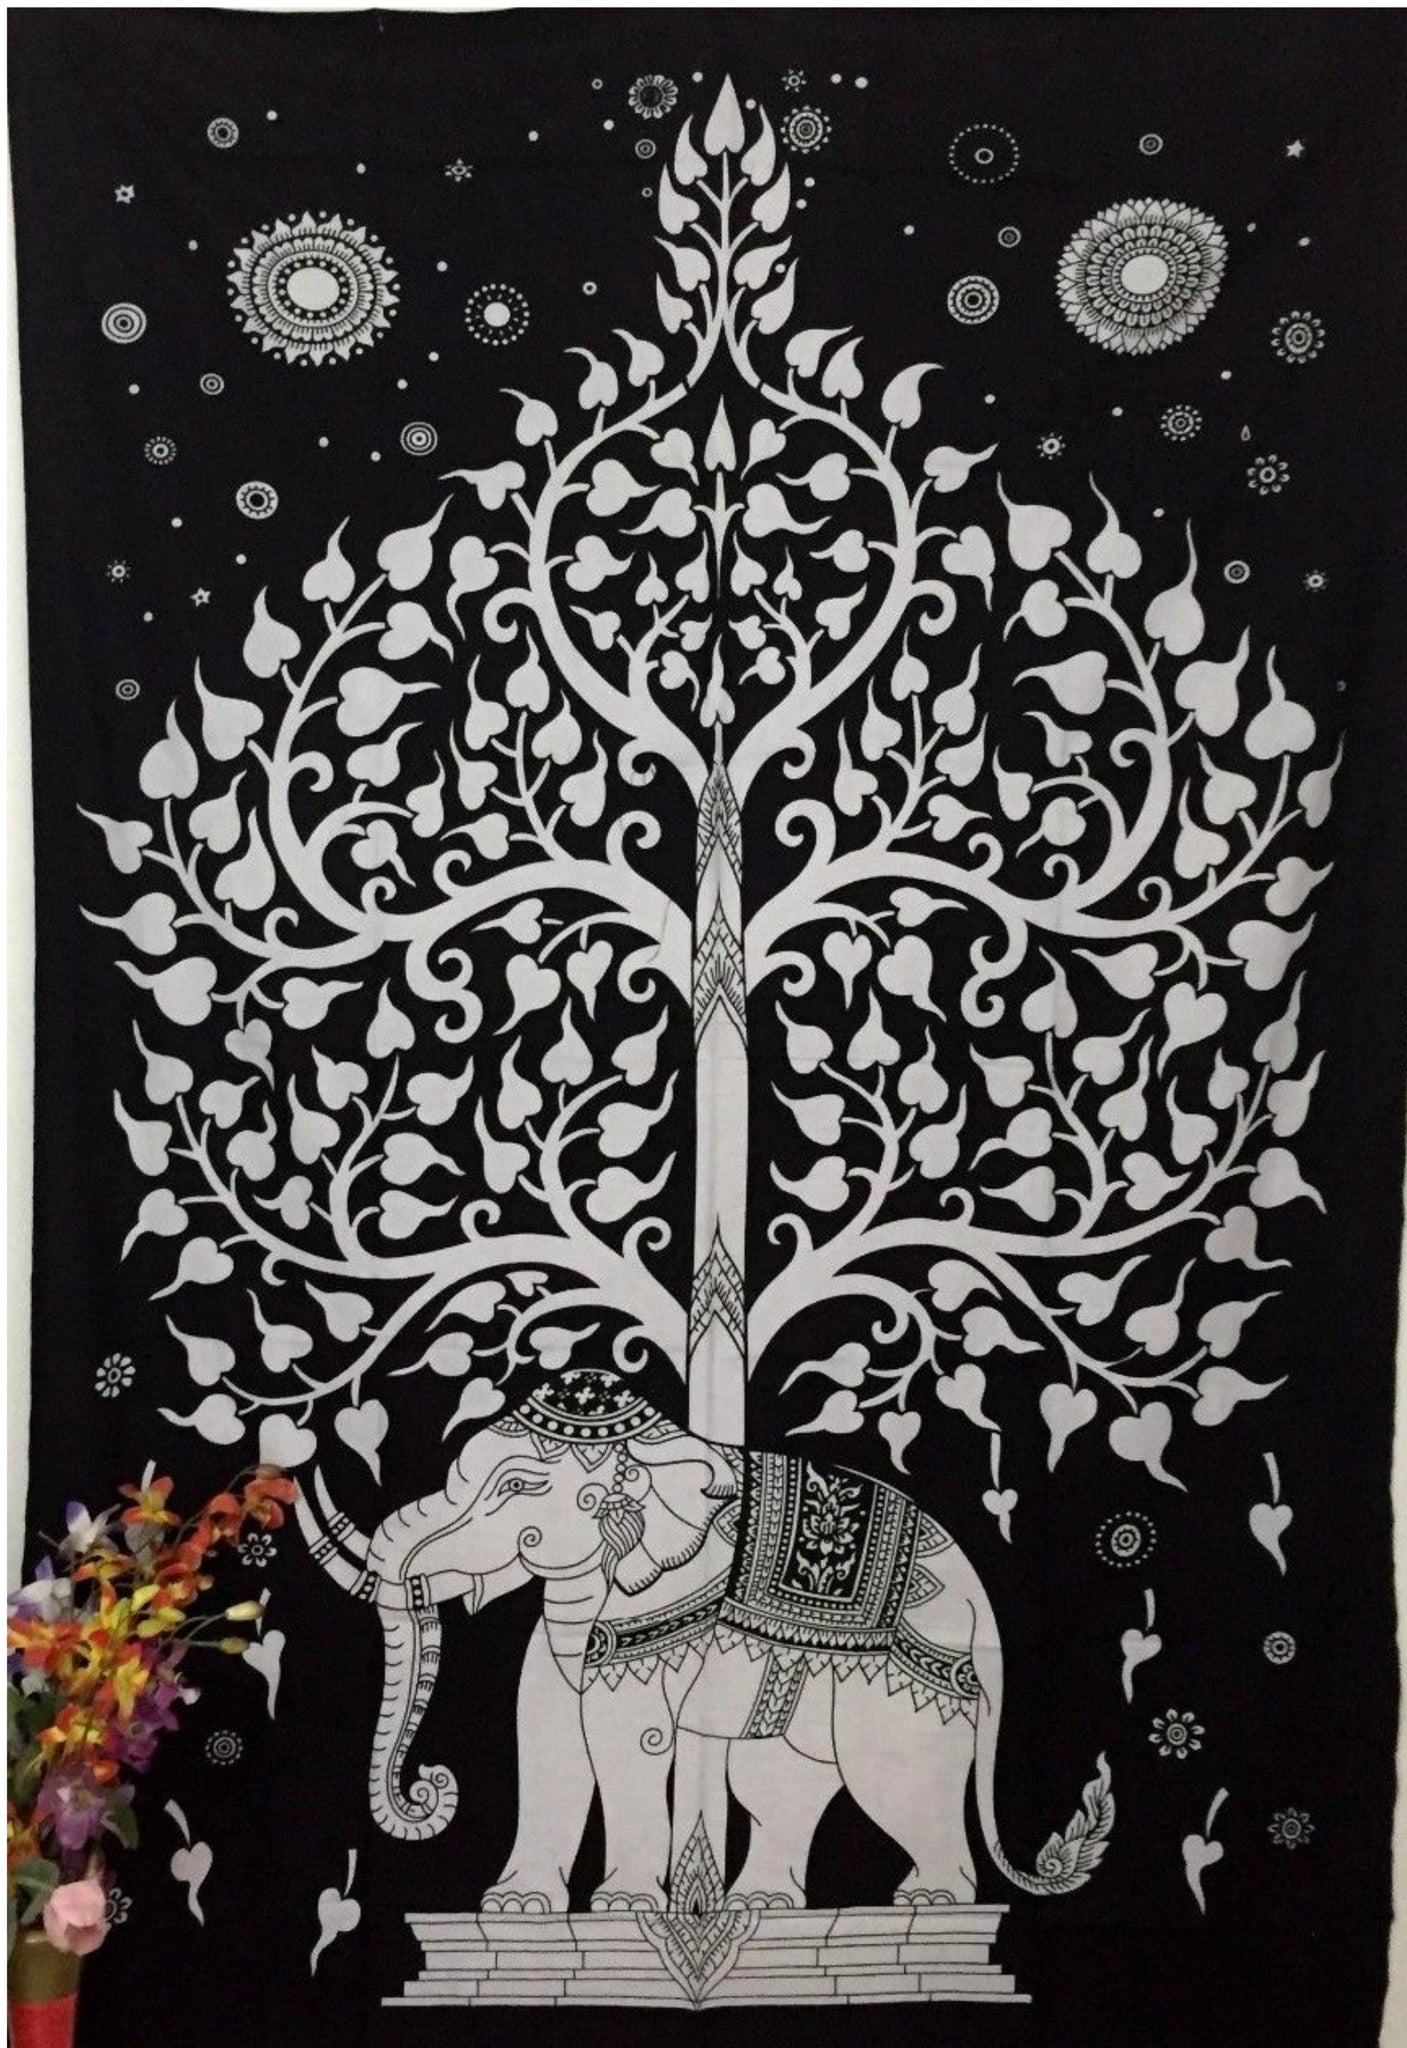 jaan-imports - Black and White Tree of Life Elephant Poster Tapestry - Khoobsurat Gift Shop - Poster Tapestry